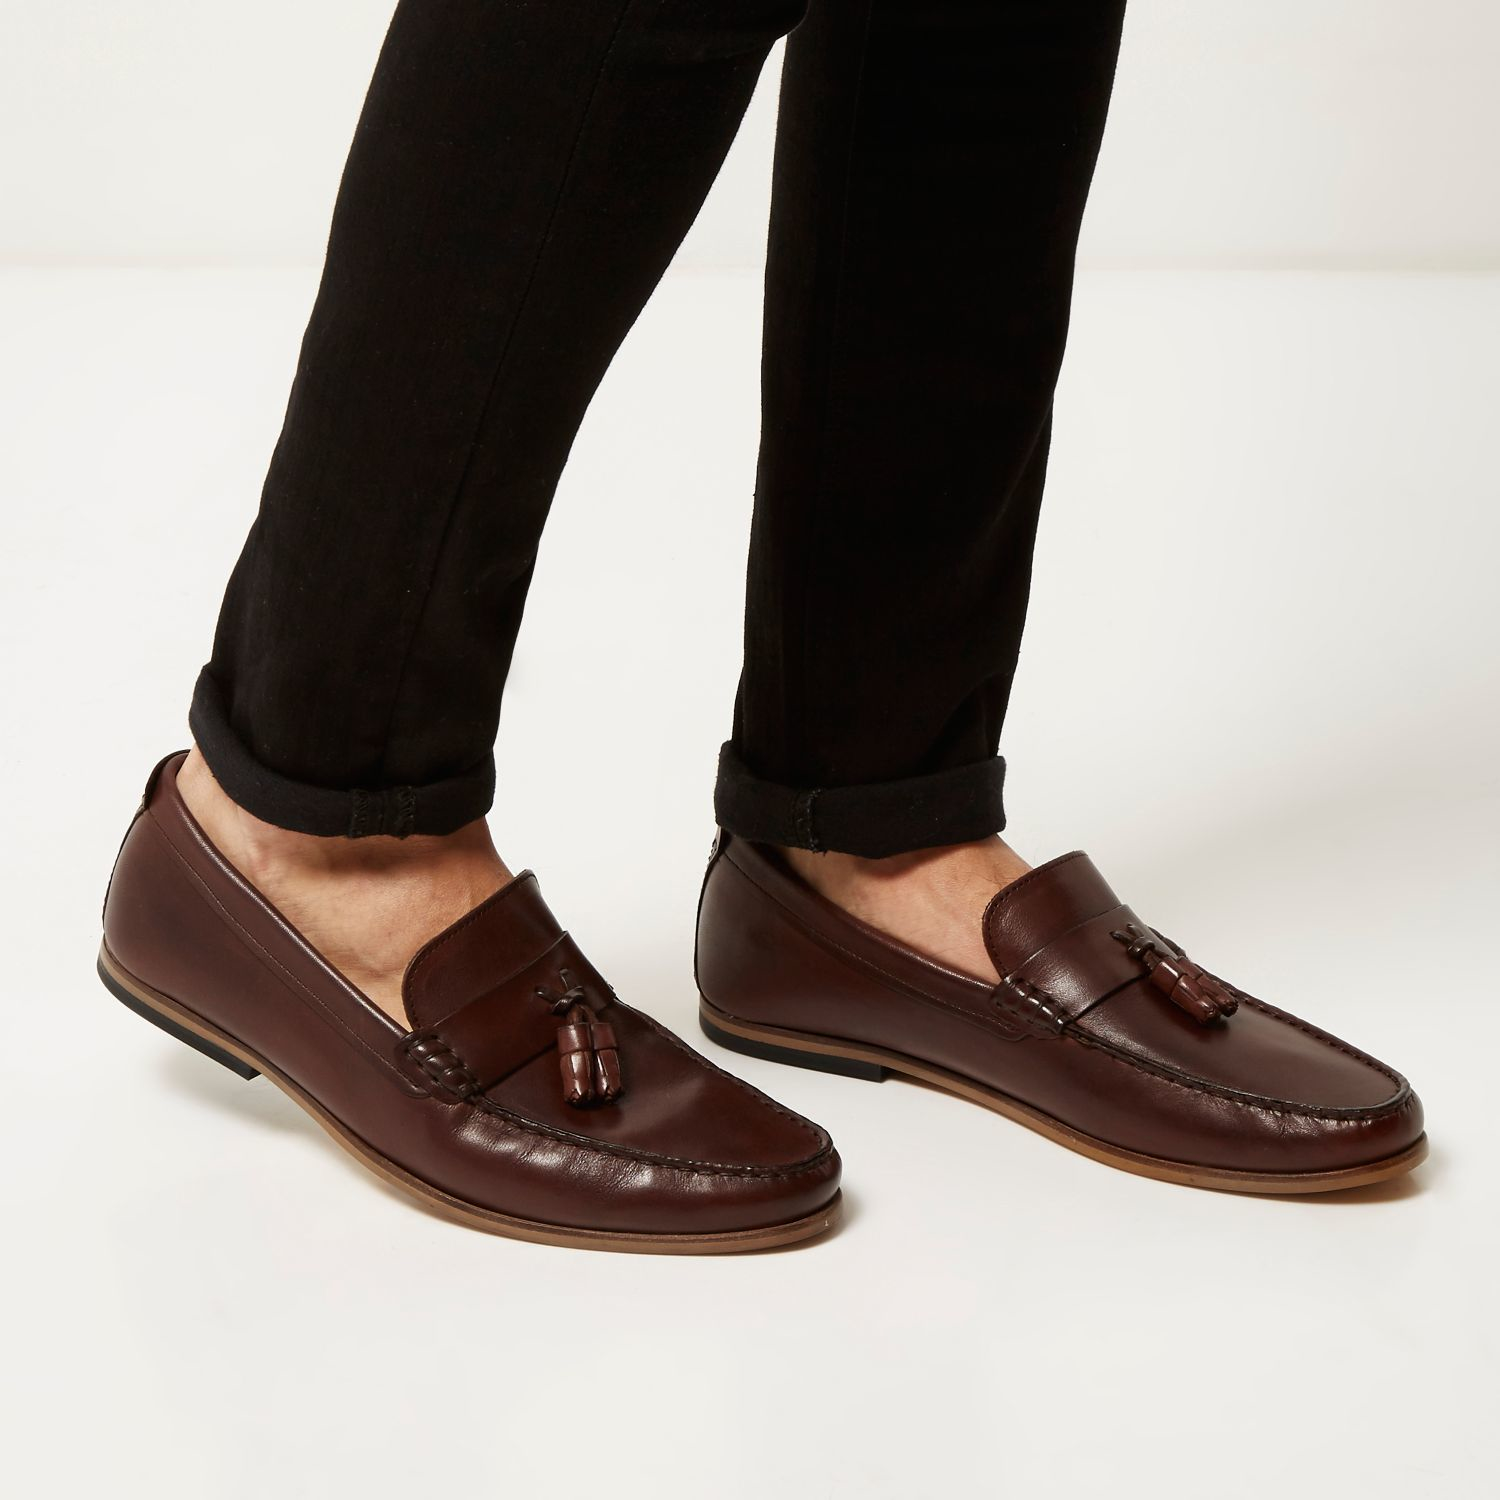 ce6f8b783c53 River Island Dark Brown Leather Tassel Loafers in Brown for Men - Lyst